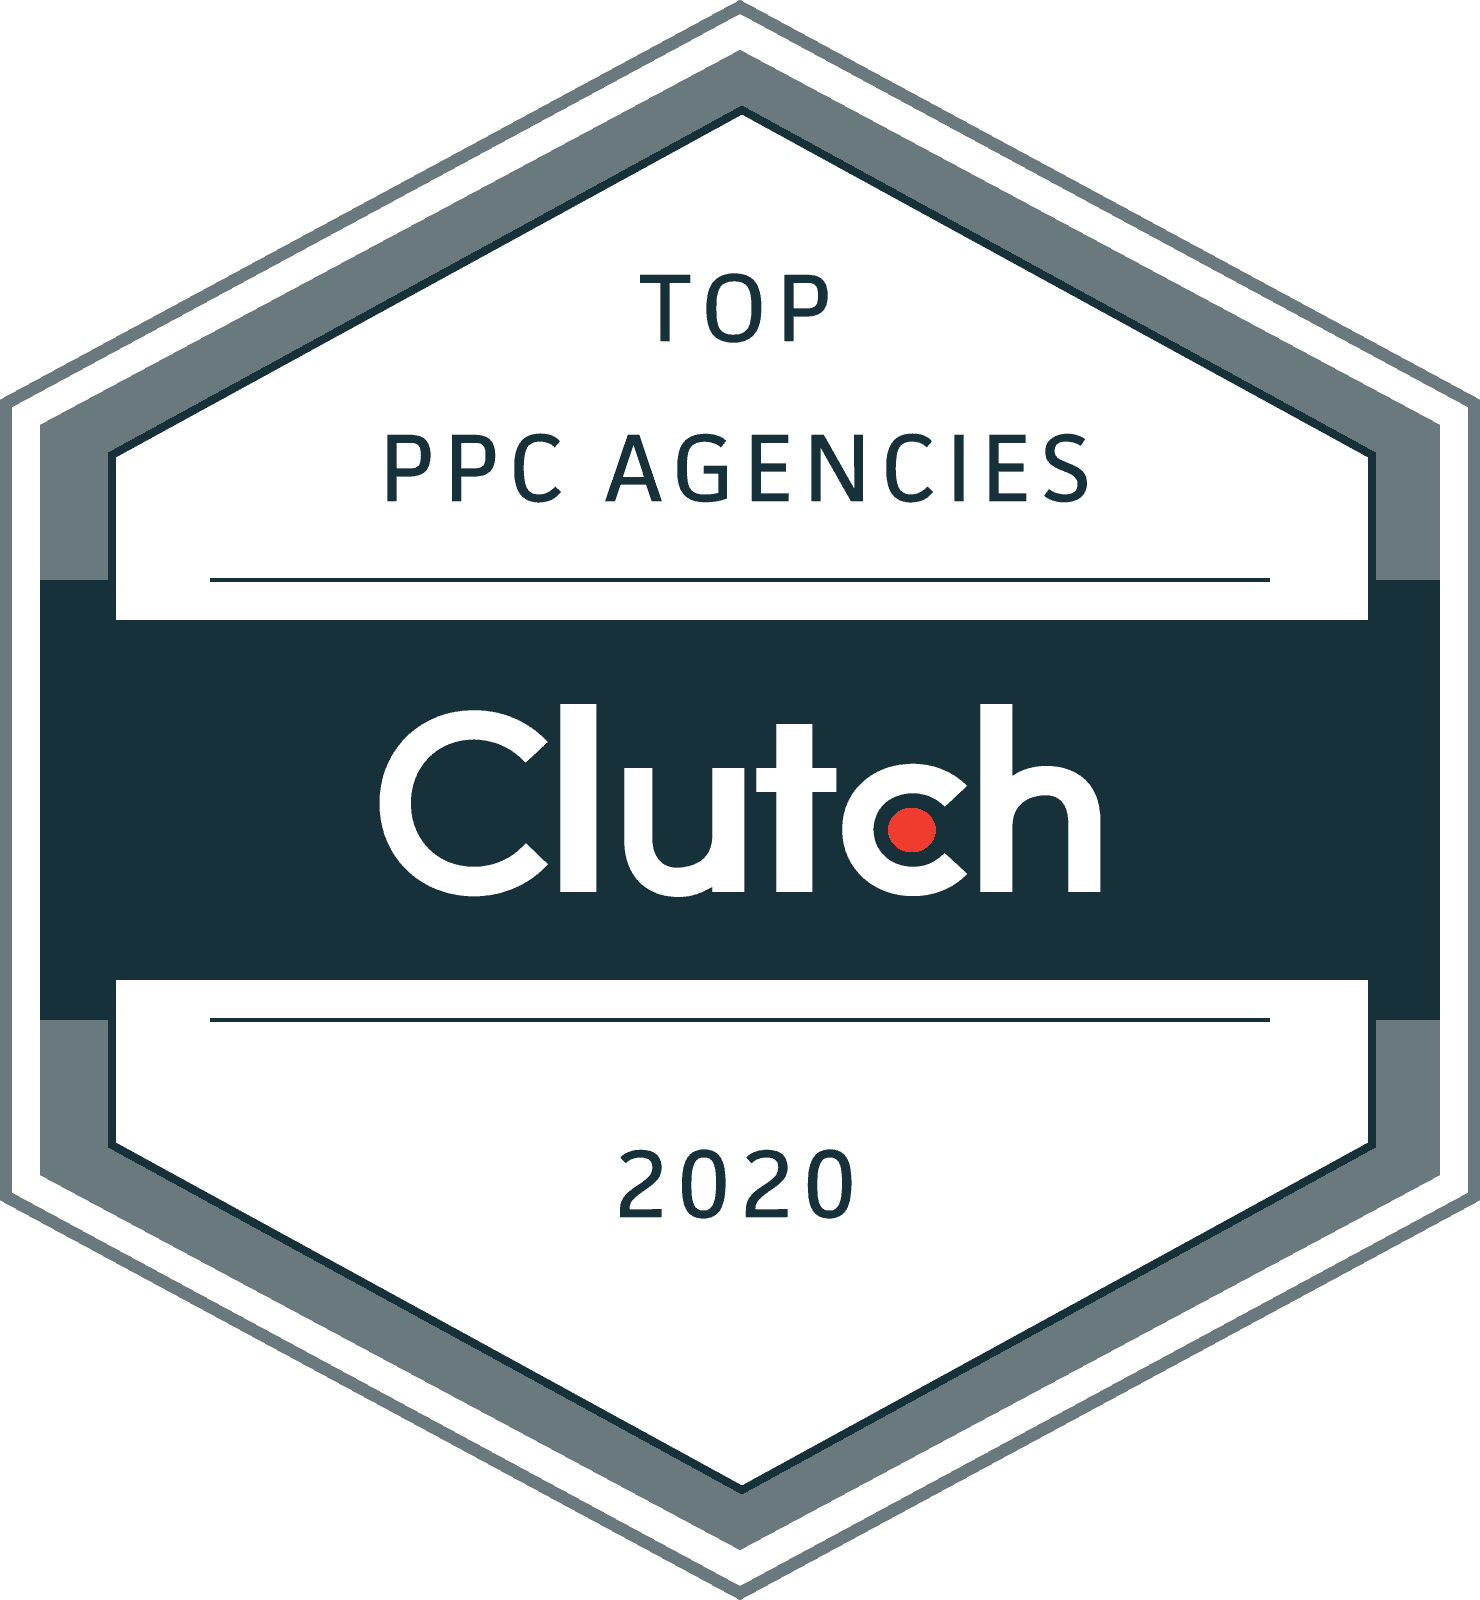 Top UK PPC Agencies 2021